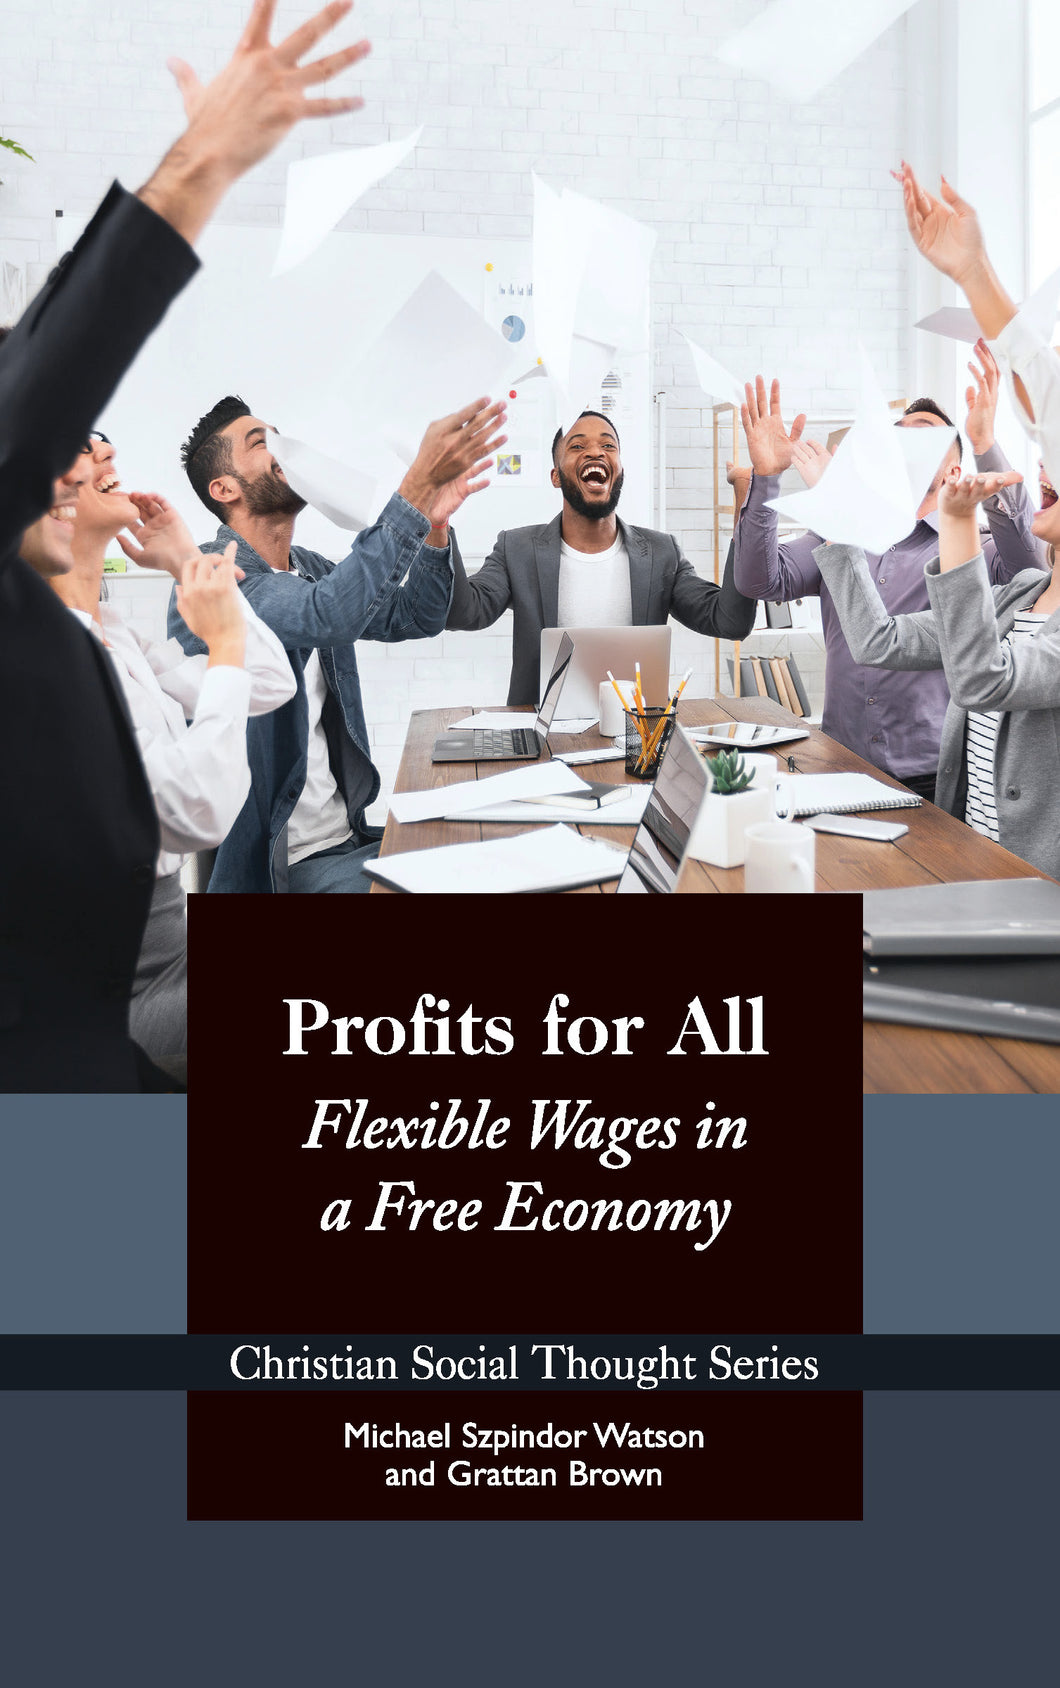 Profits for All: Flexible Wages in a Free Economy